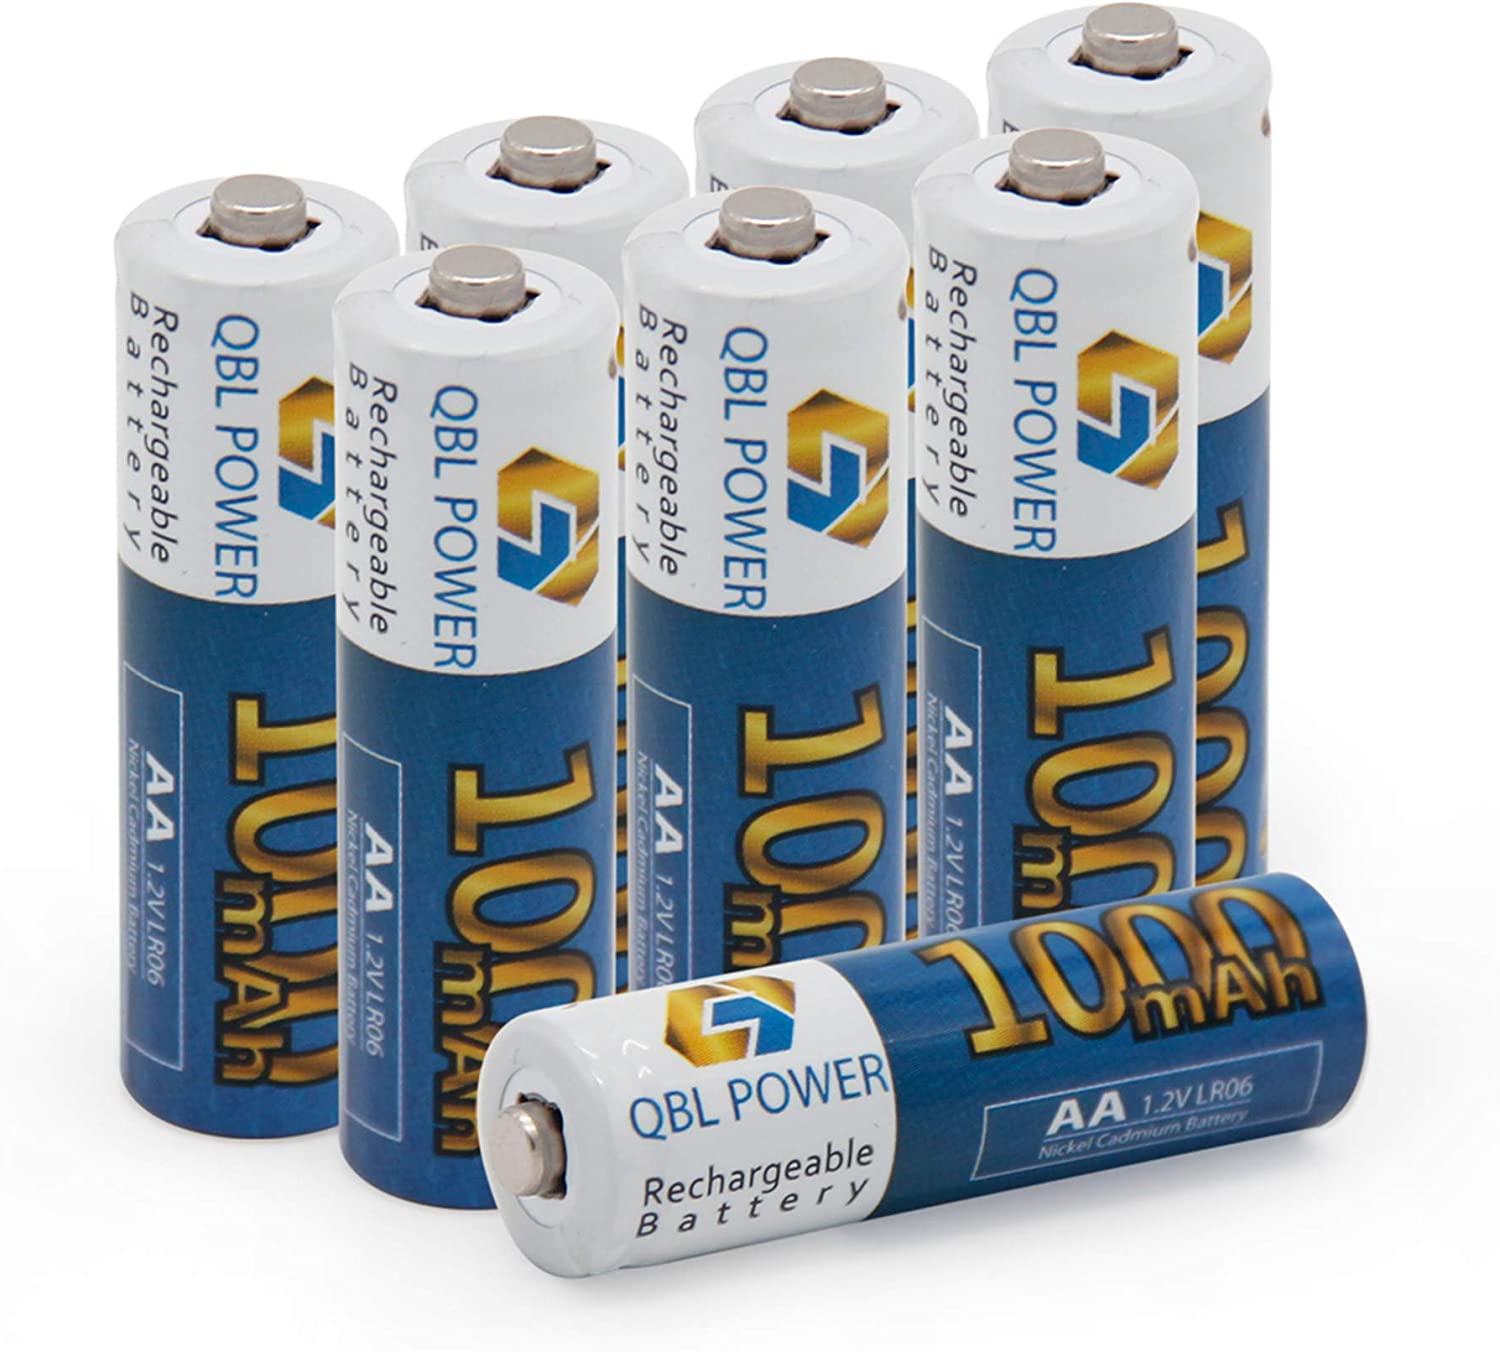 QBLPOWER AA NiCD 1000mAh 1.2V Rechargeable Batteries for Solar Lights, Garden Lights, Remotes, Mice (8 PCS)